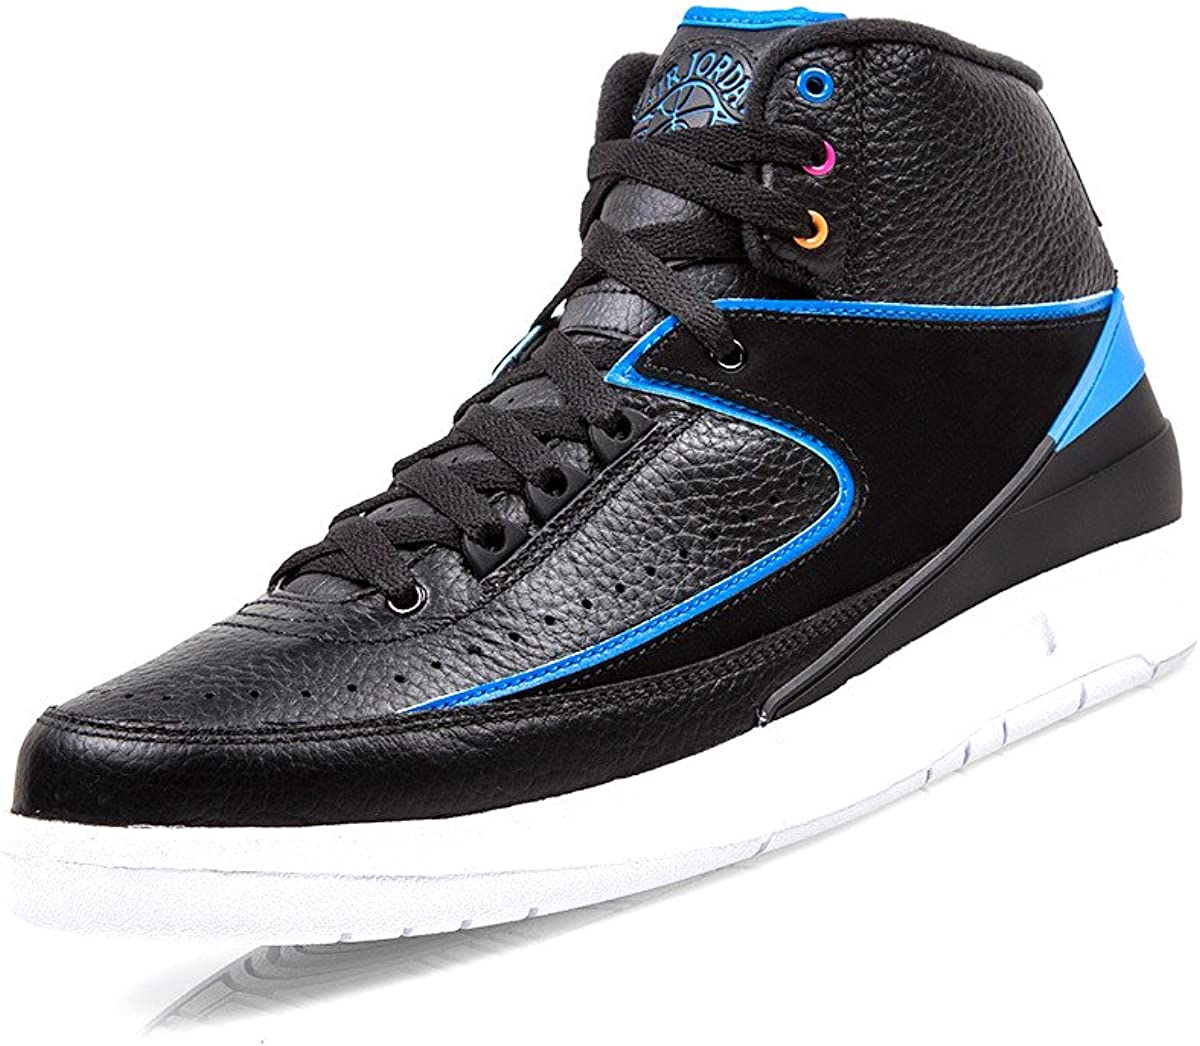 Nike Men's Air Jordan 2 Retro Basketball Shoes